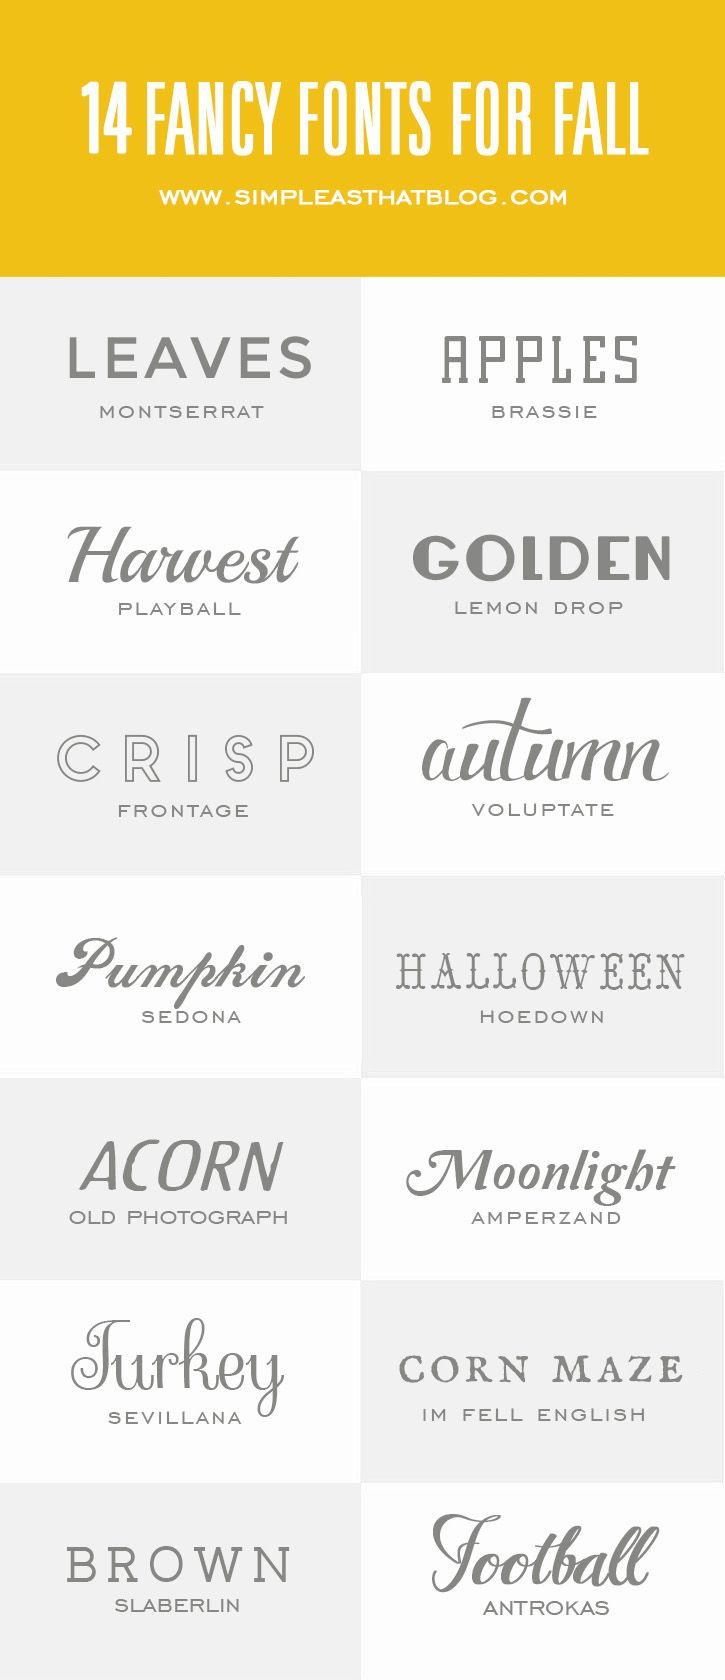 Roundup of fancy, FREE fonts for Fall!